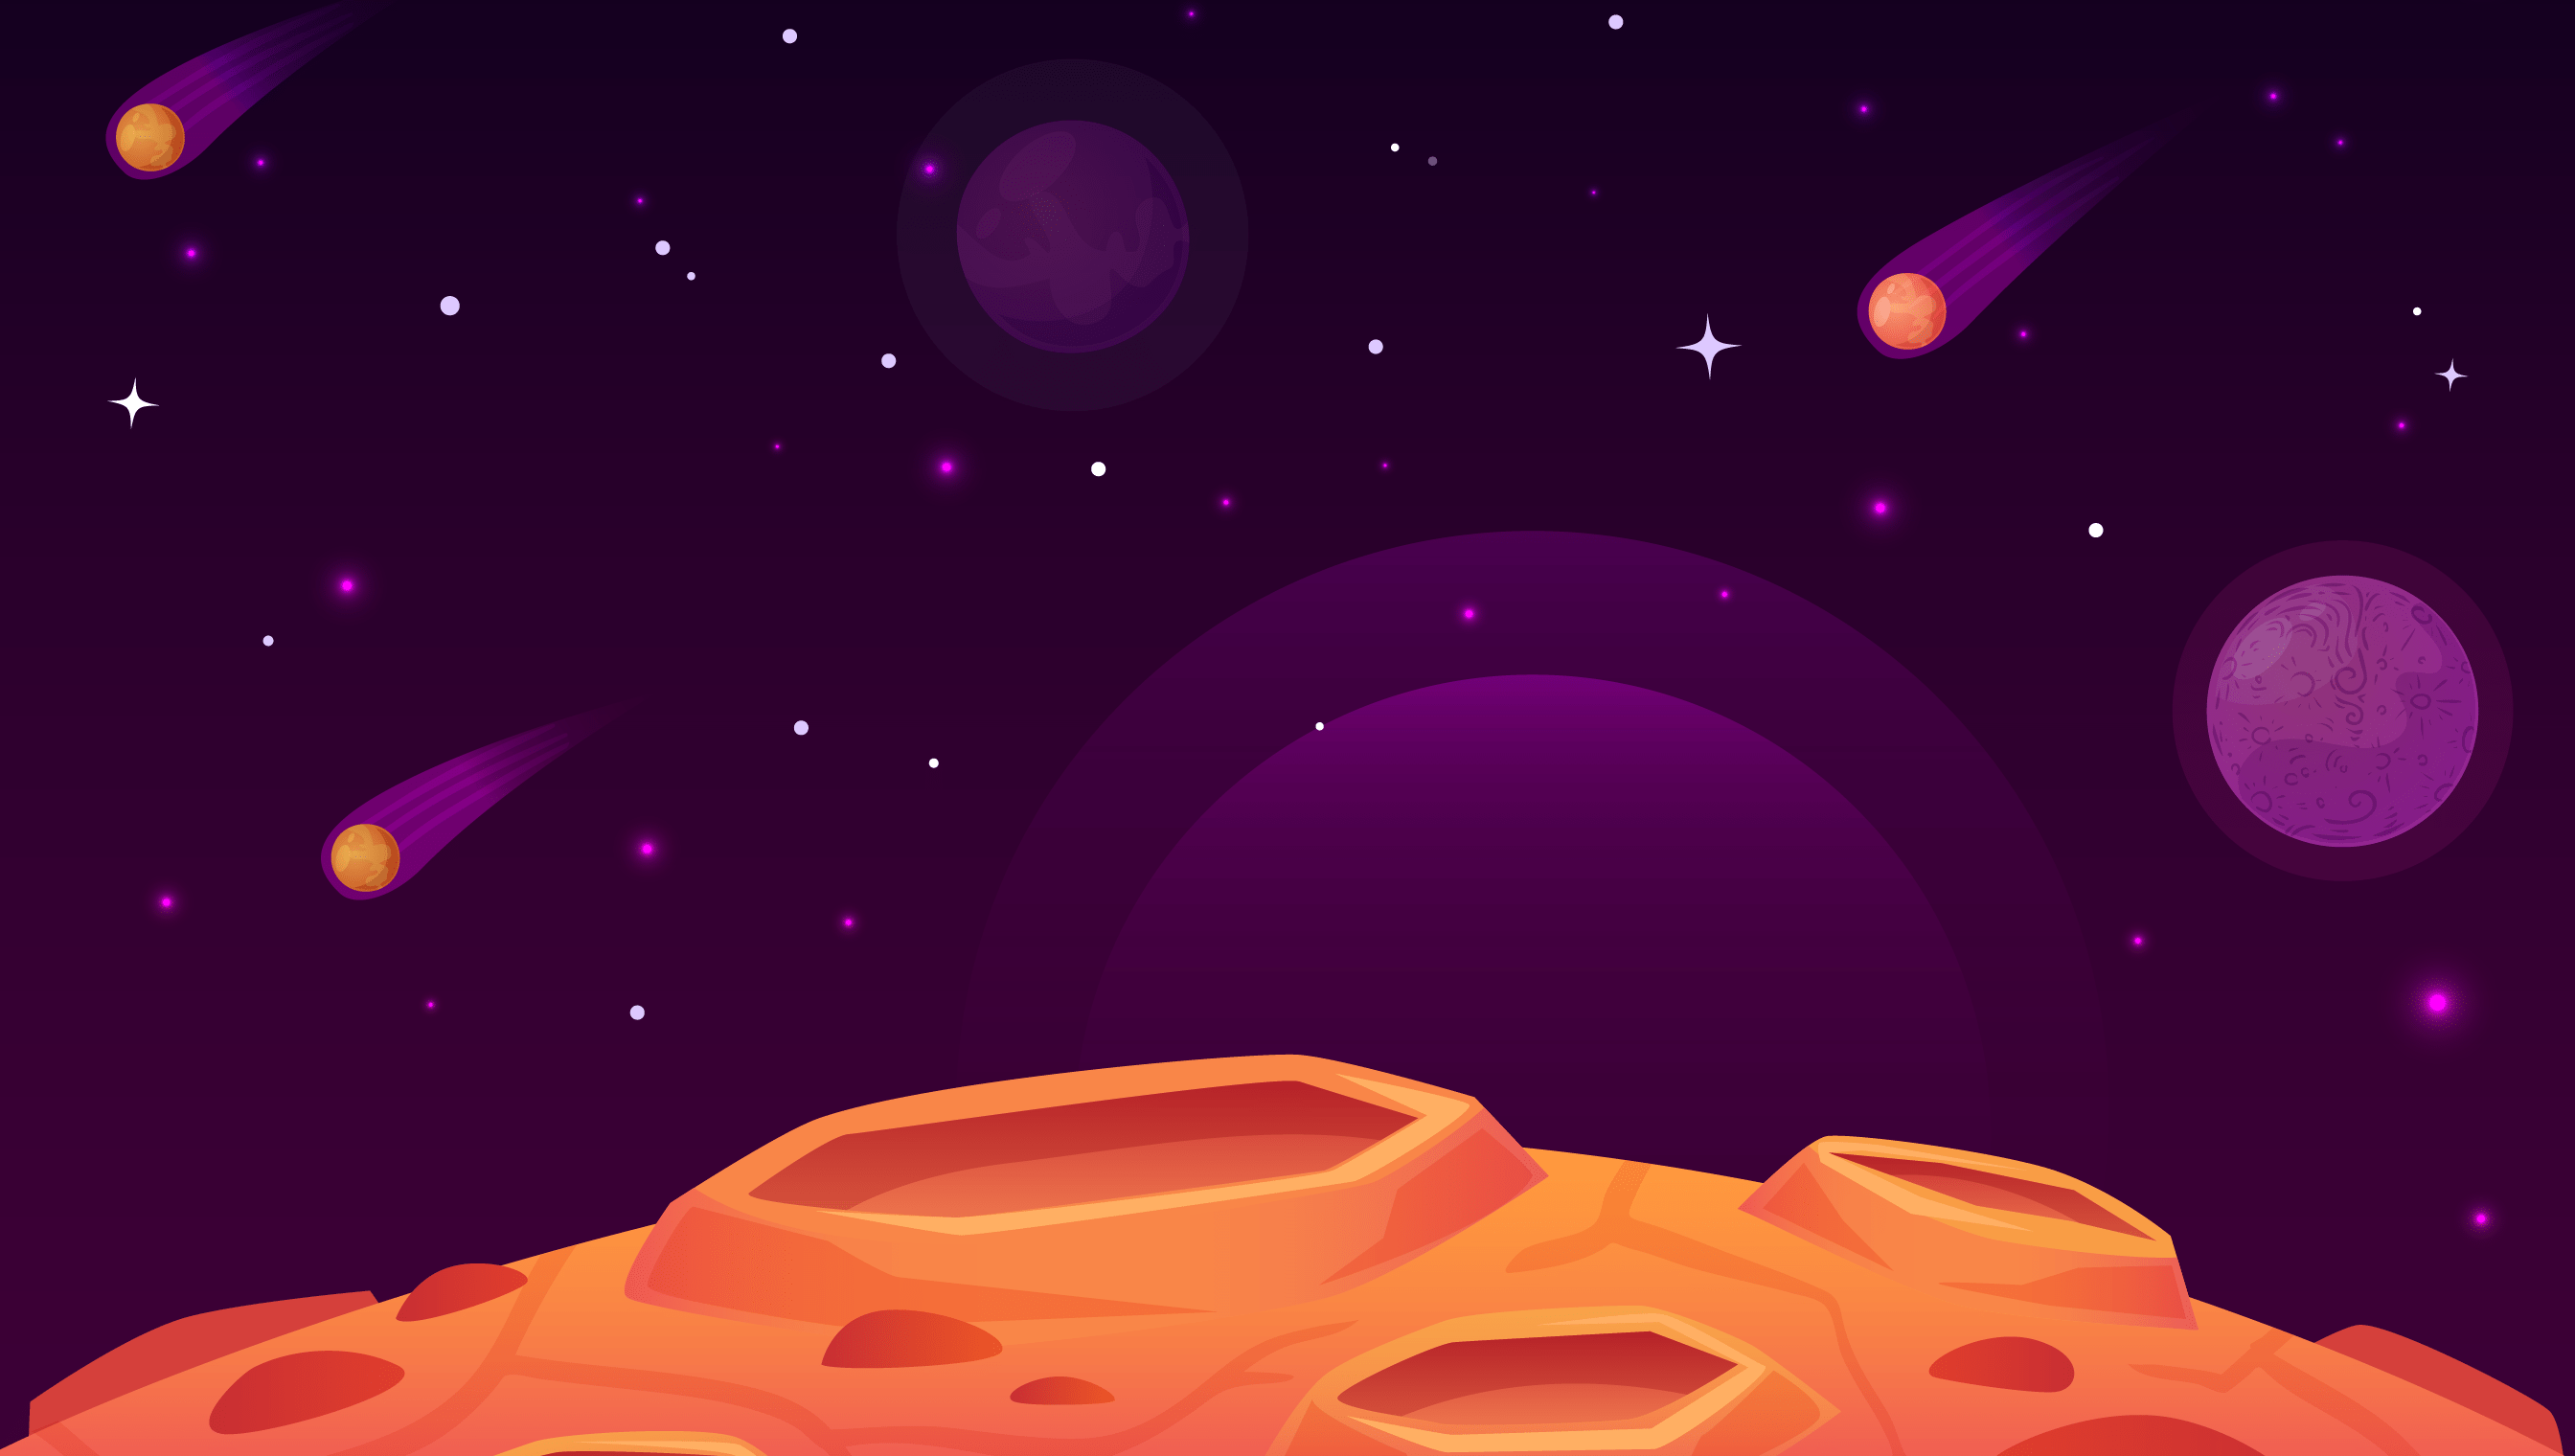 background scene - Space Background 13